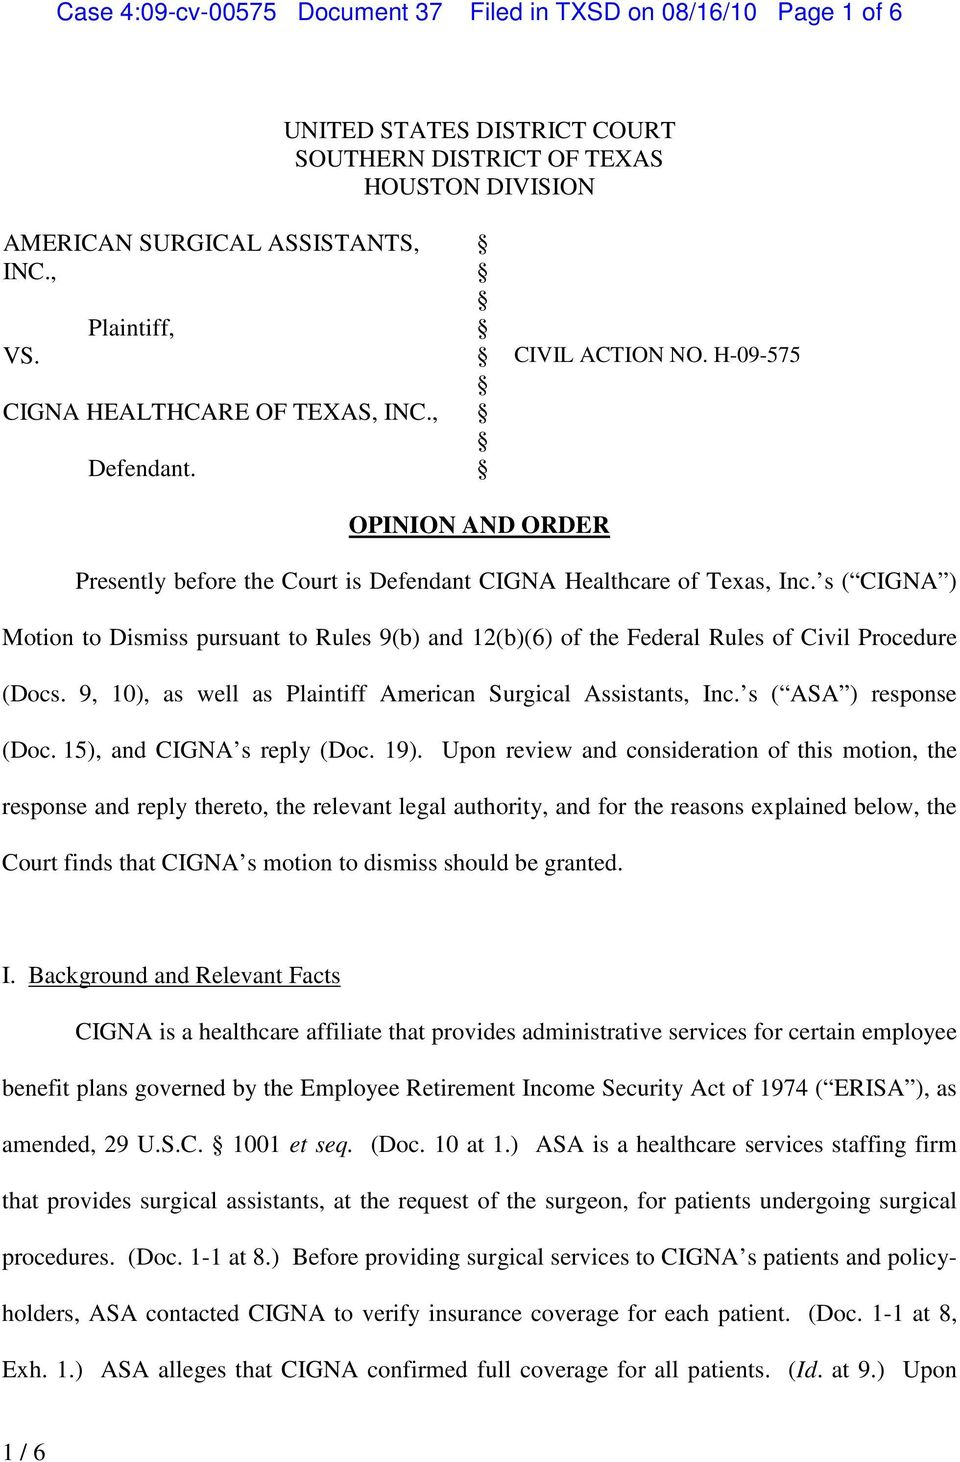 s ( CIGNA ) Motion to Dismiss pursuant to Rules 9(b) and 12(b)(6) of the Federal Rules of Civil Procedure (Docs. 9, 10), as well as Plaintiff American Surgical Assistants, Inc.